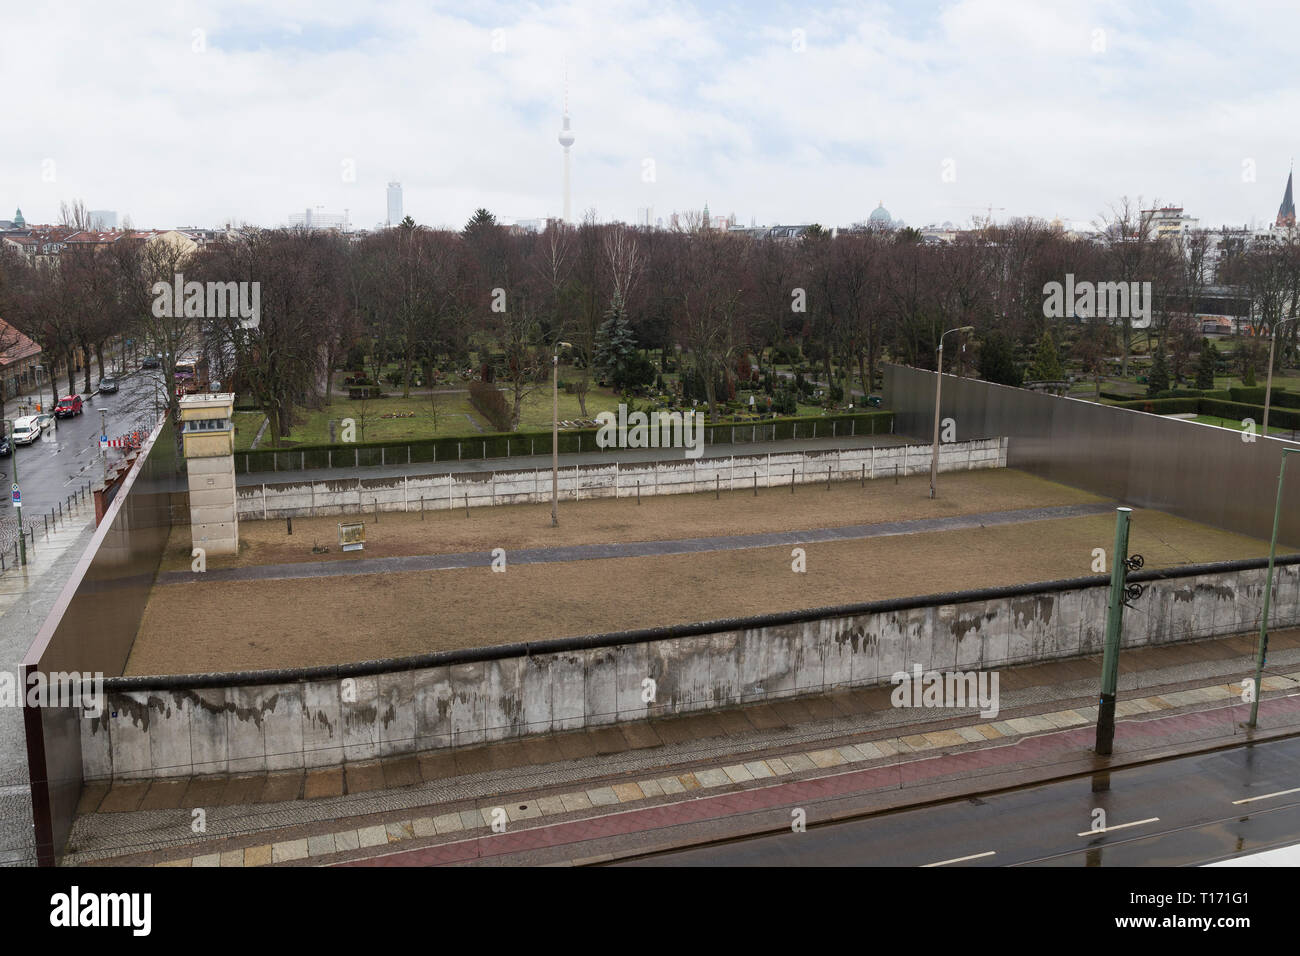 Remains of the Berlin Wall and watchtower at the Berlin Wall Memorial (Berliner Mauer) on Bernauer Straße in Berlin, Germany, viewed from above. - Stock Image